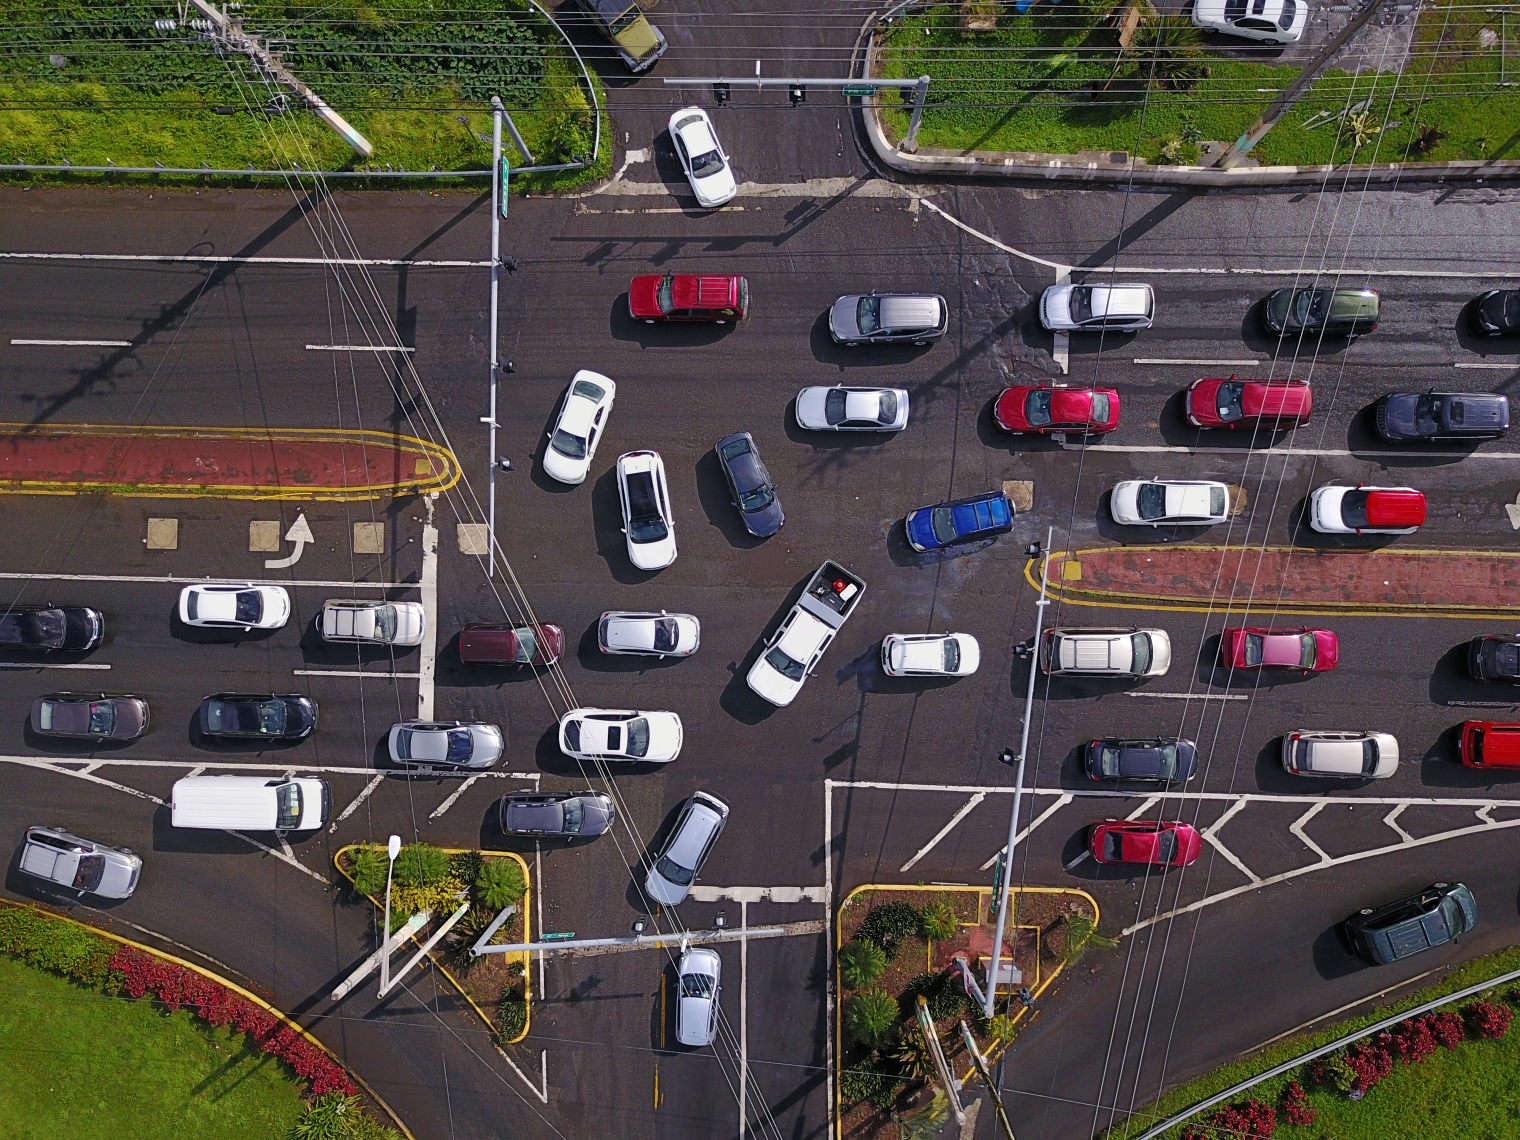 A traffic jam snarls cars in Humaco. Even in places where infrastructure remains intact residents face daily disruptions(Ricardo Arduengo)